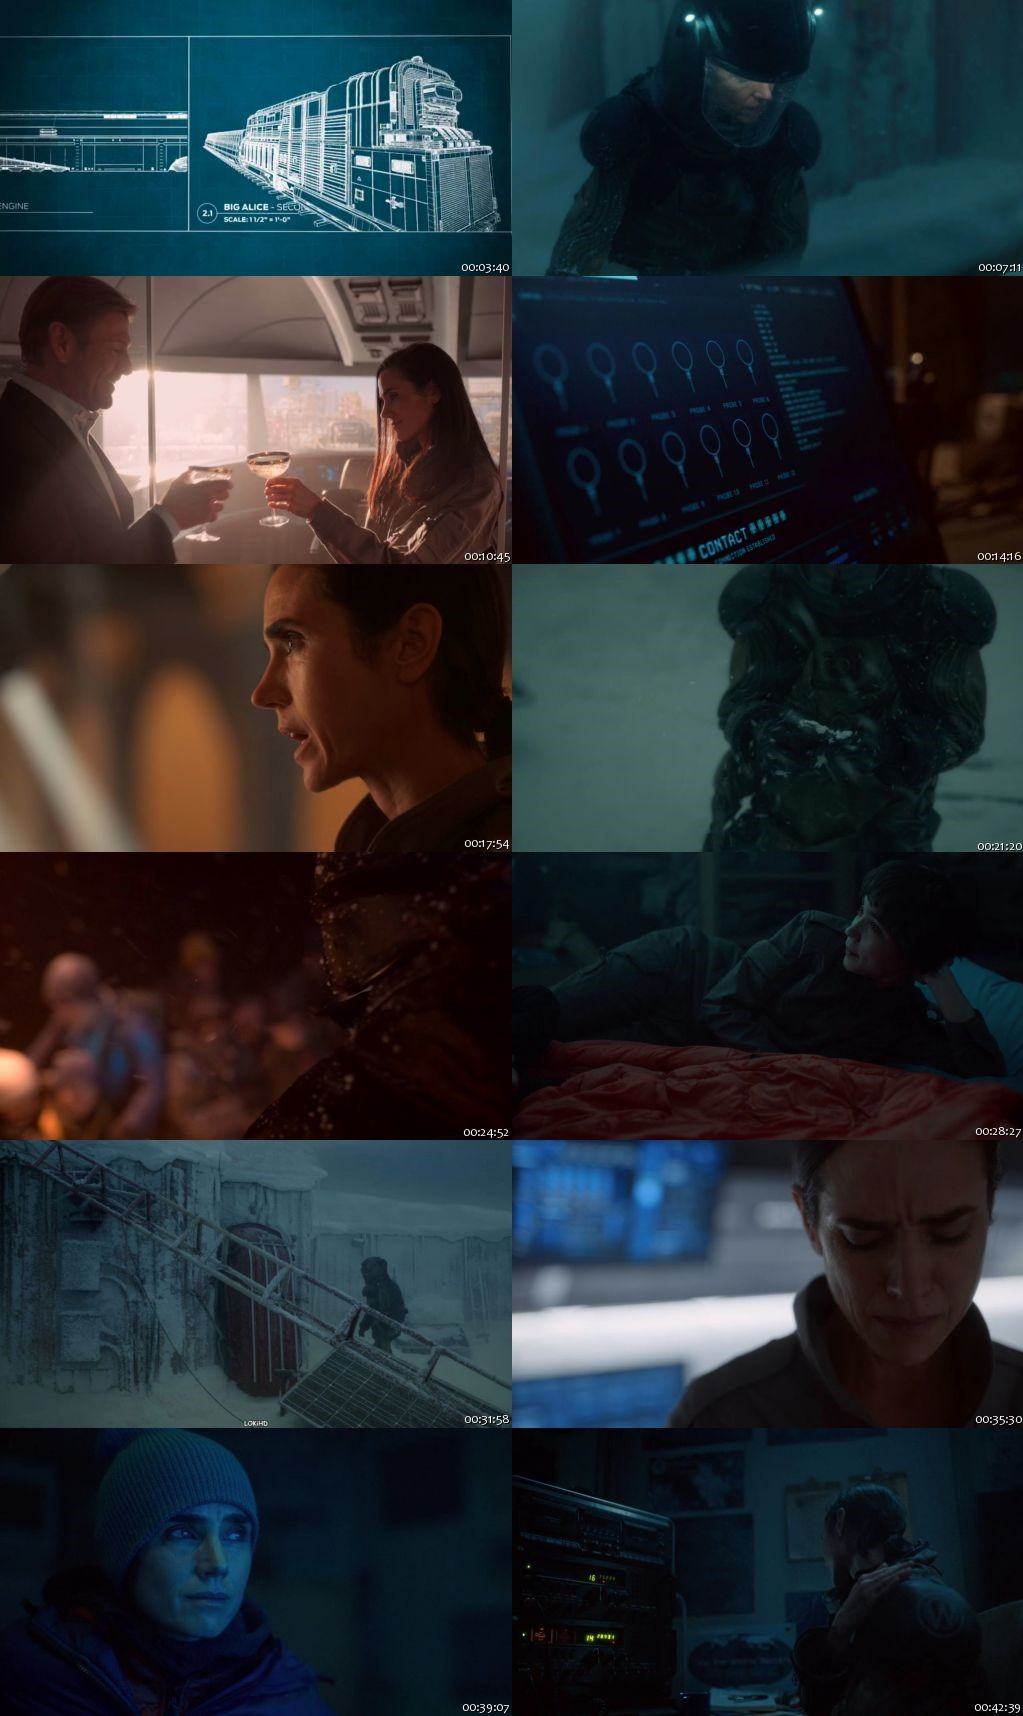 Snowpiercer 2021 S01E06 HDRip 720p Hindi-English